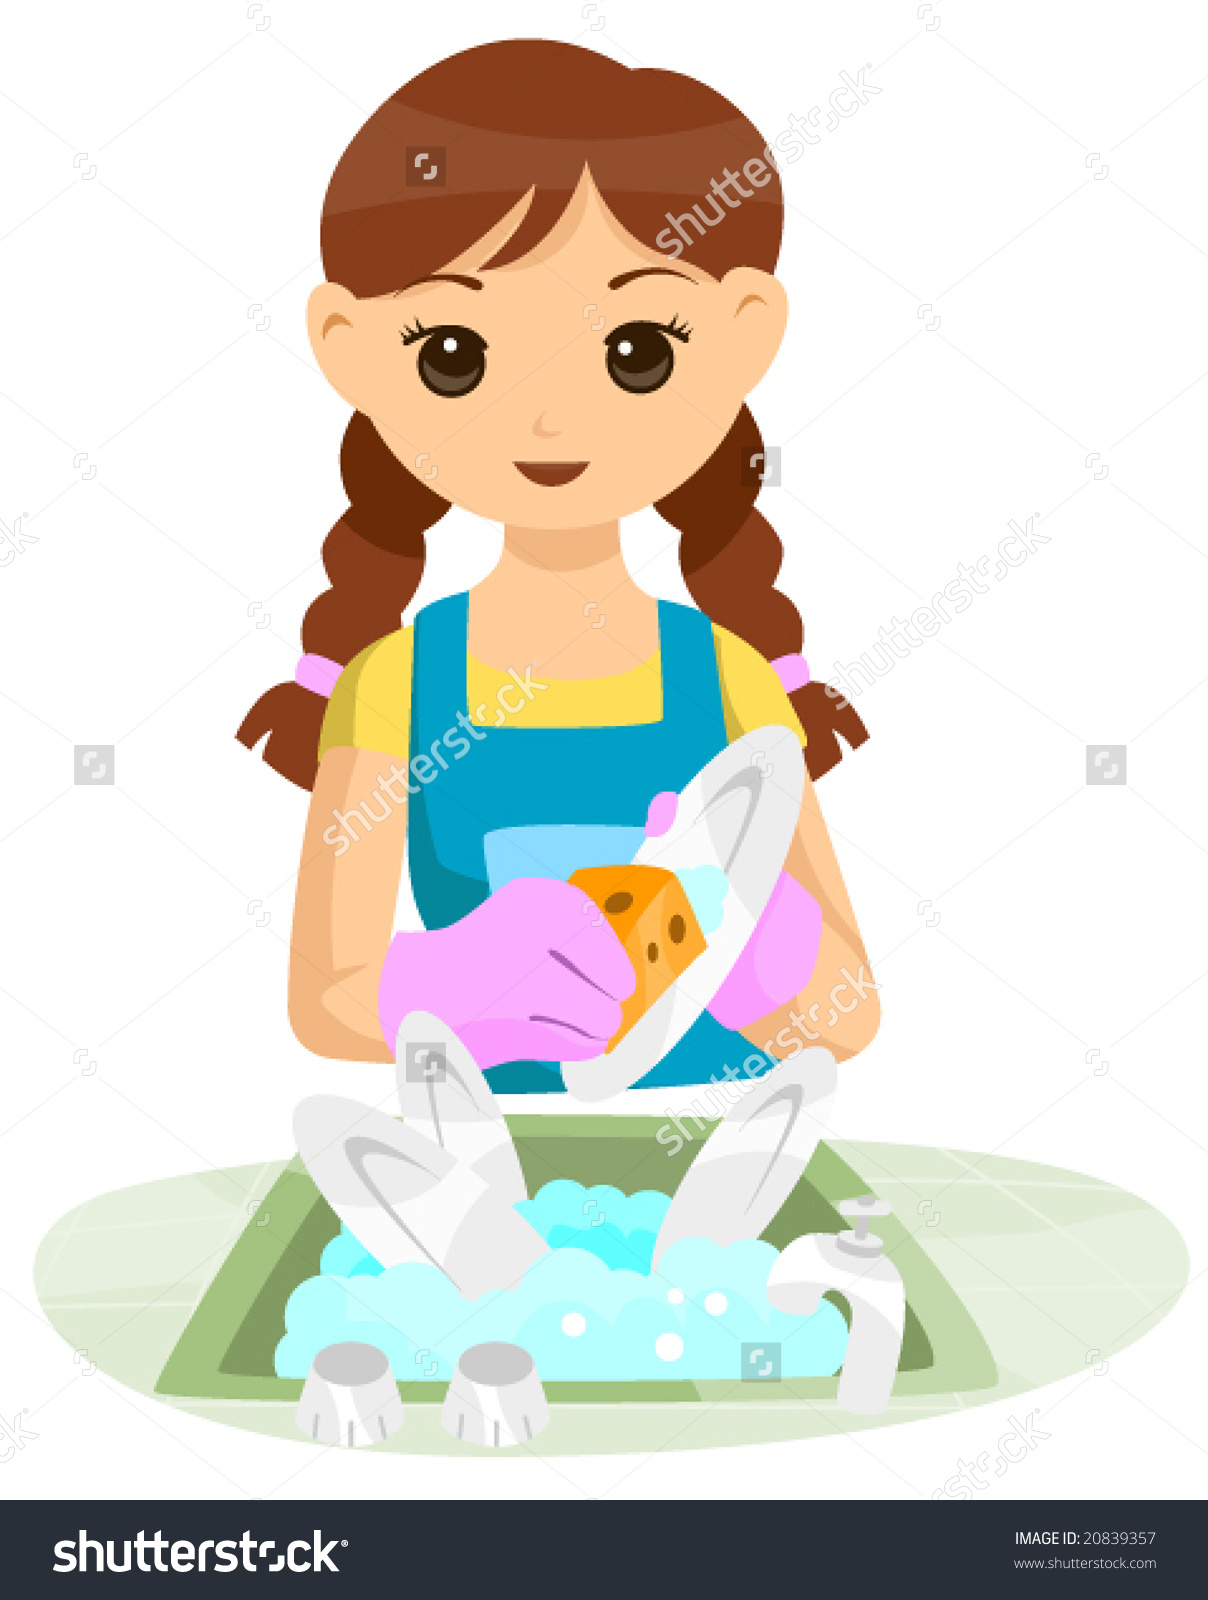 Washing dishes by hand clipart transparent stock Clipart washing dishes - ClipartFox transparent stock